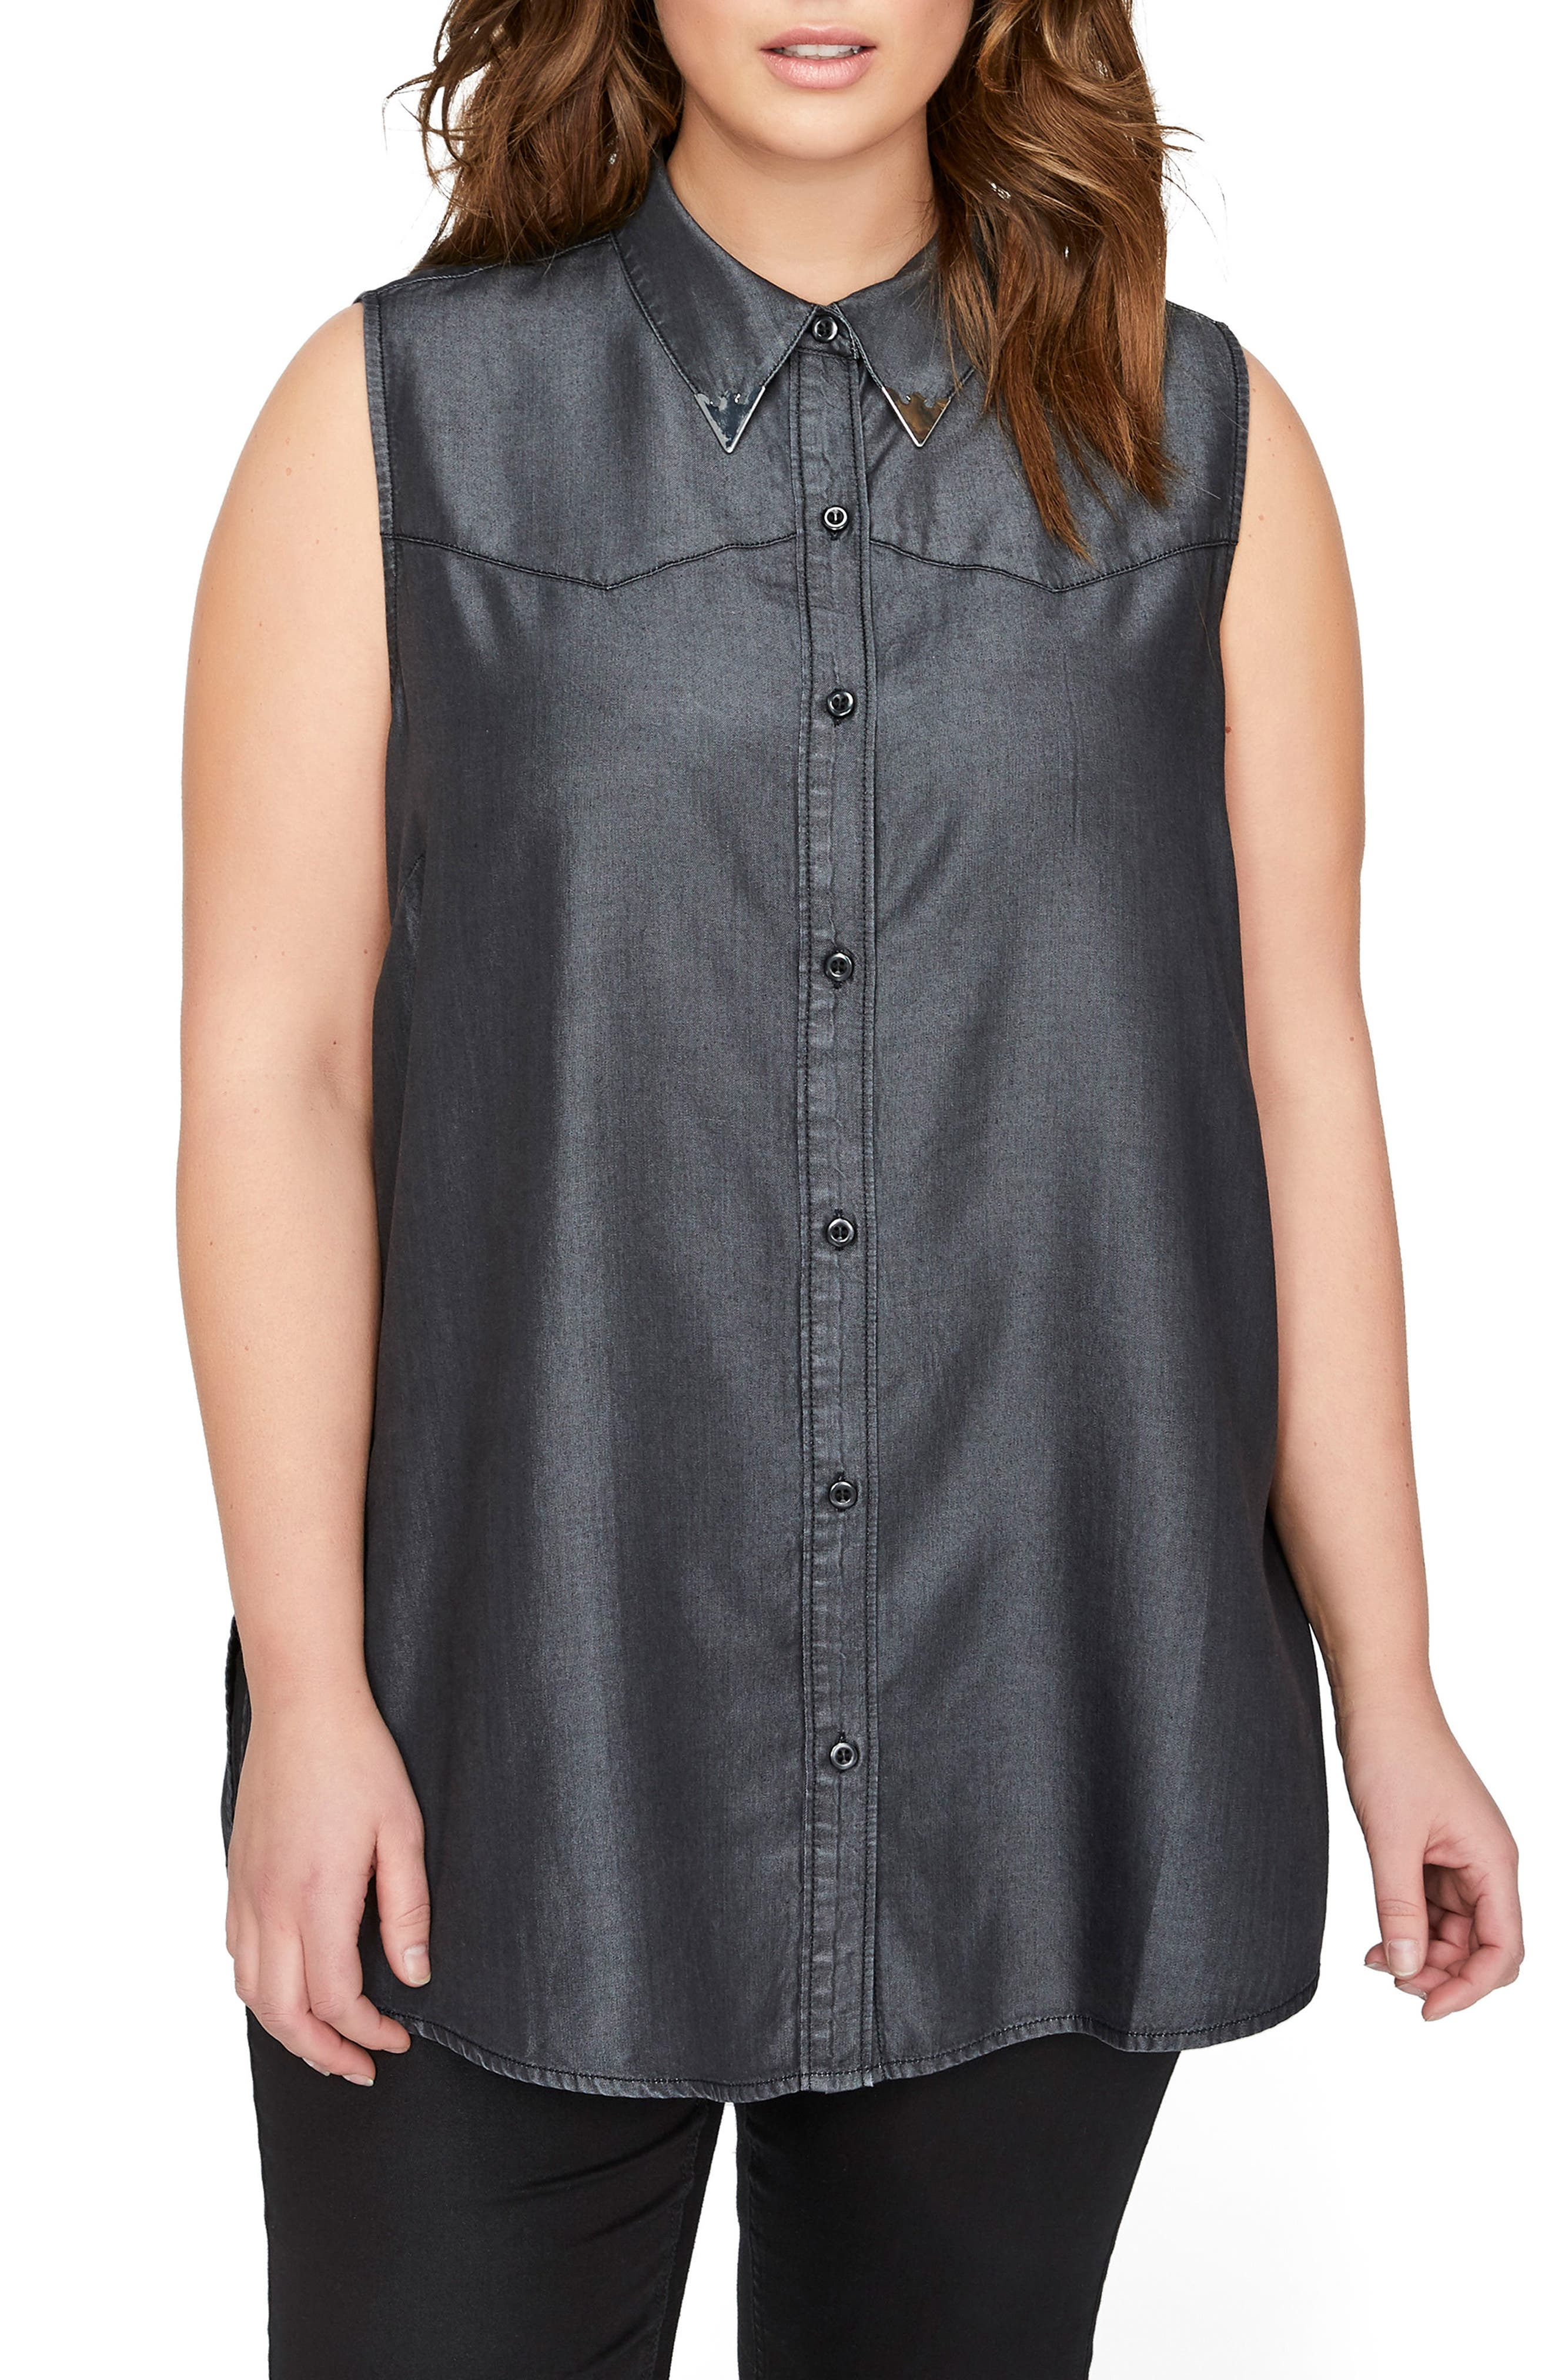 ADDITION ELLE LOVE AND LEGEND Ruffle Back Western Shirt (Plus Size)